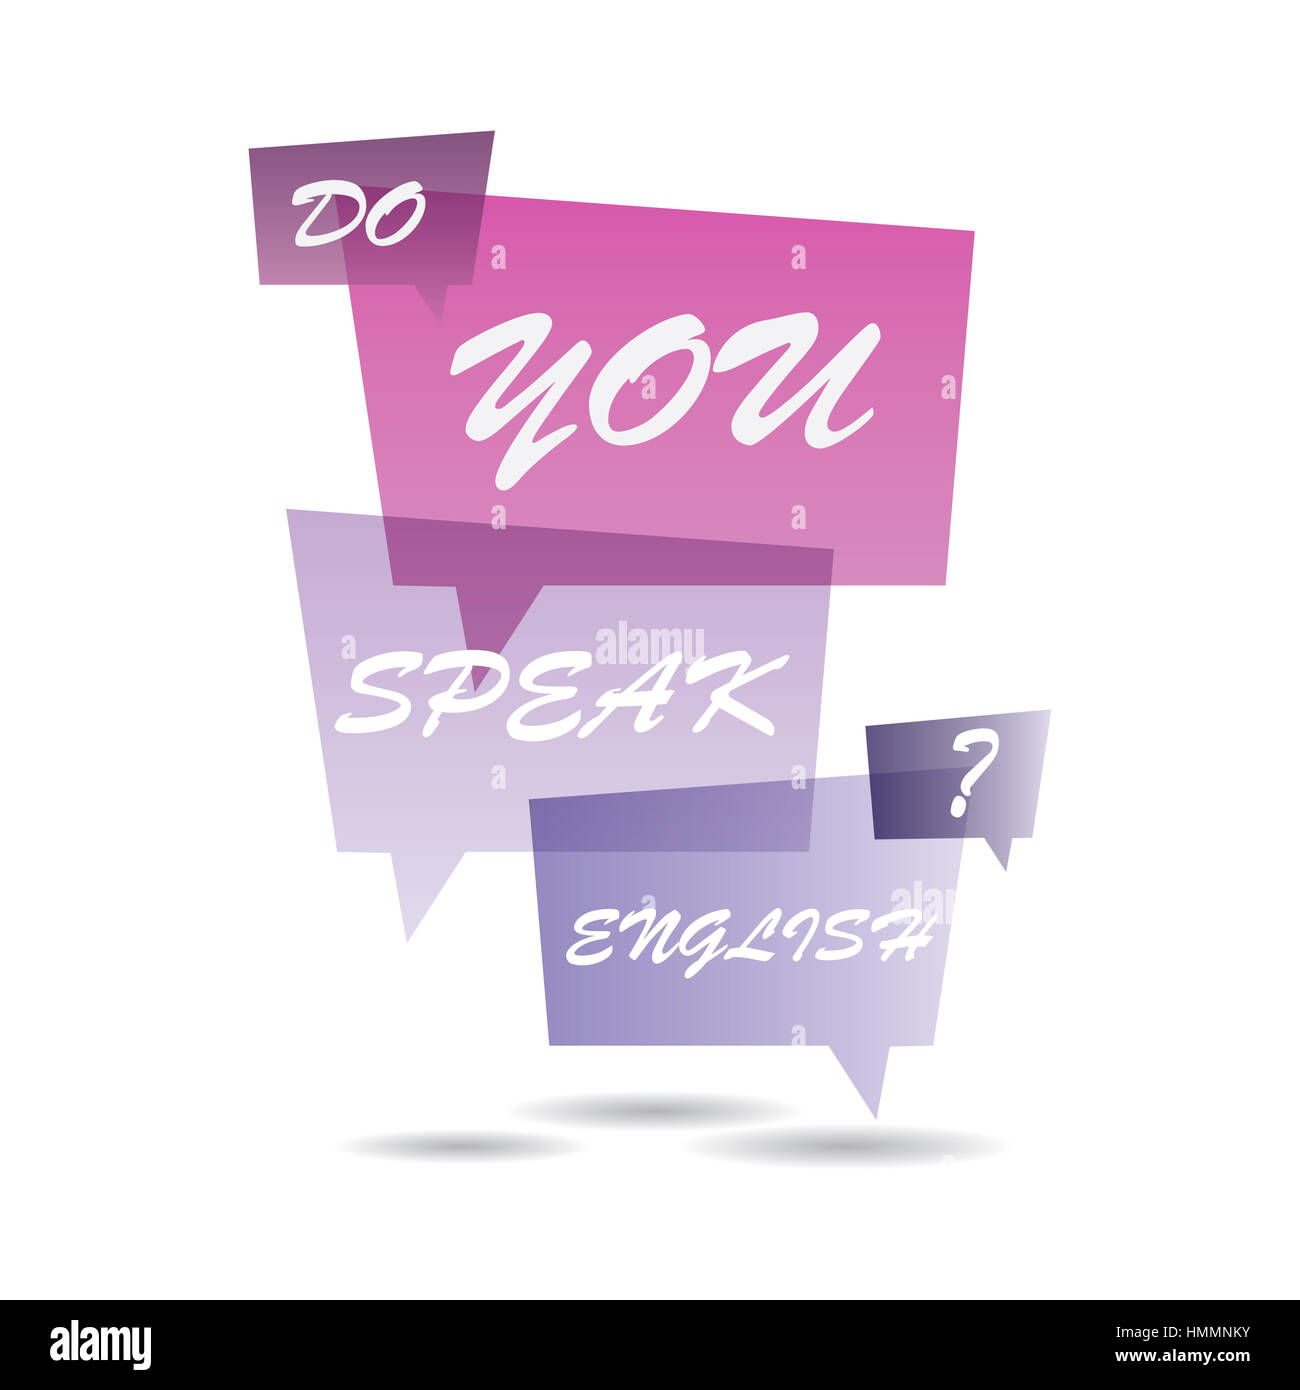 Do You Speak English on Speech Bubbles - Stock Image